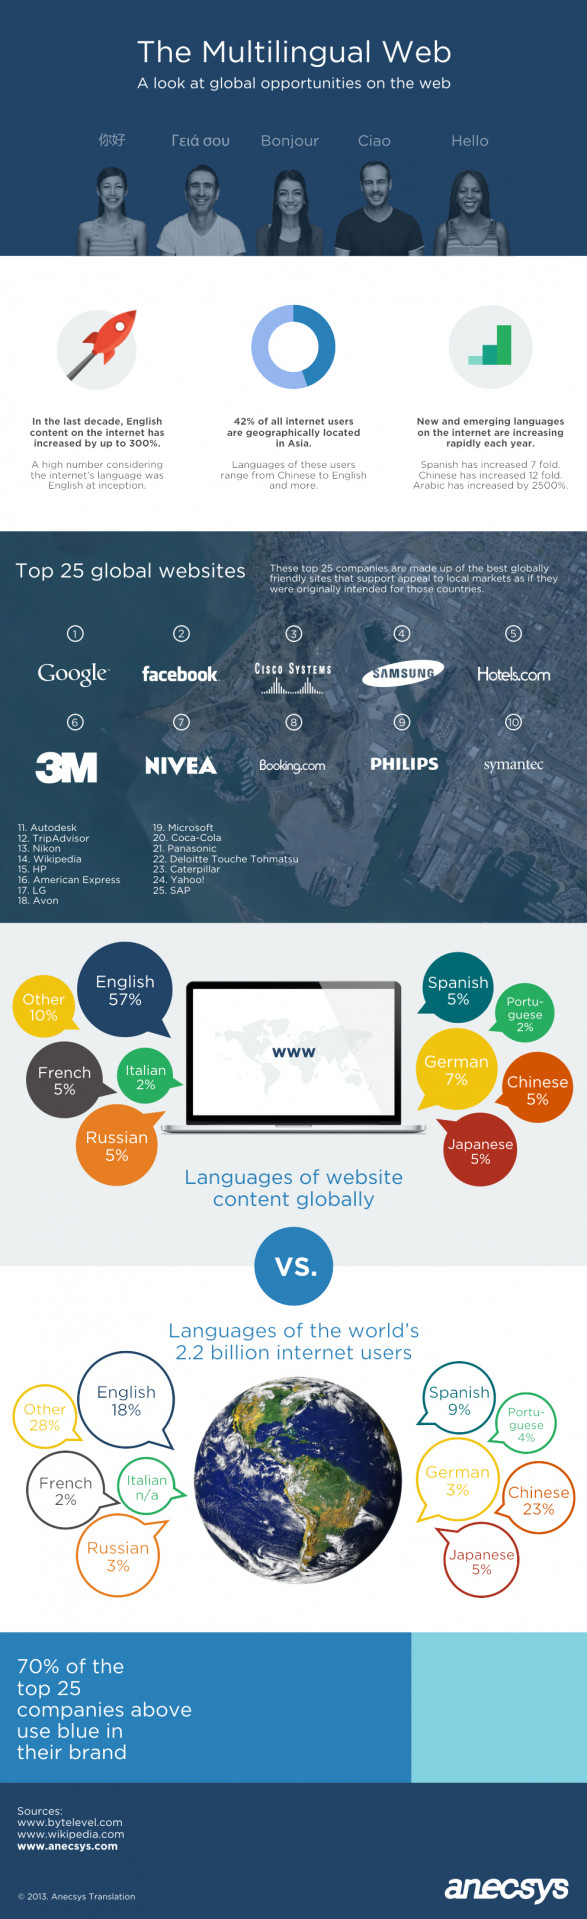 The Multilingual Web